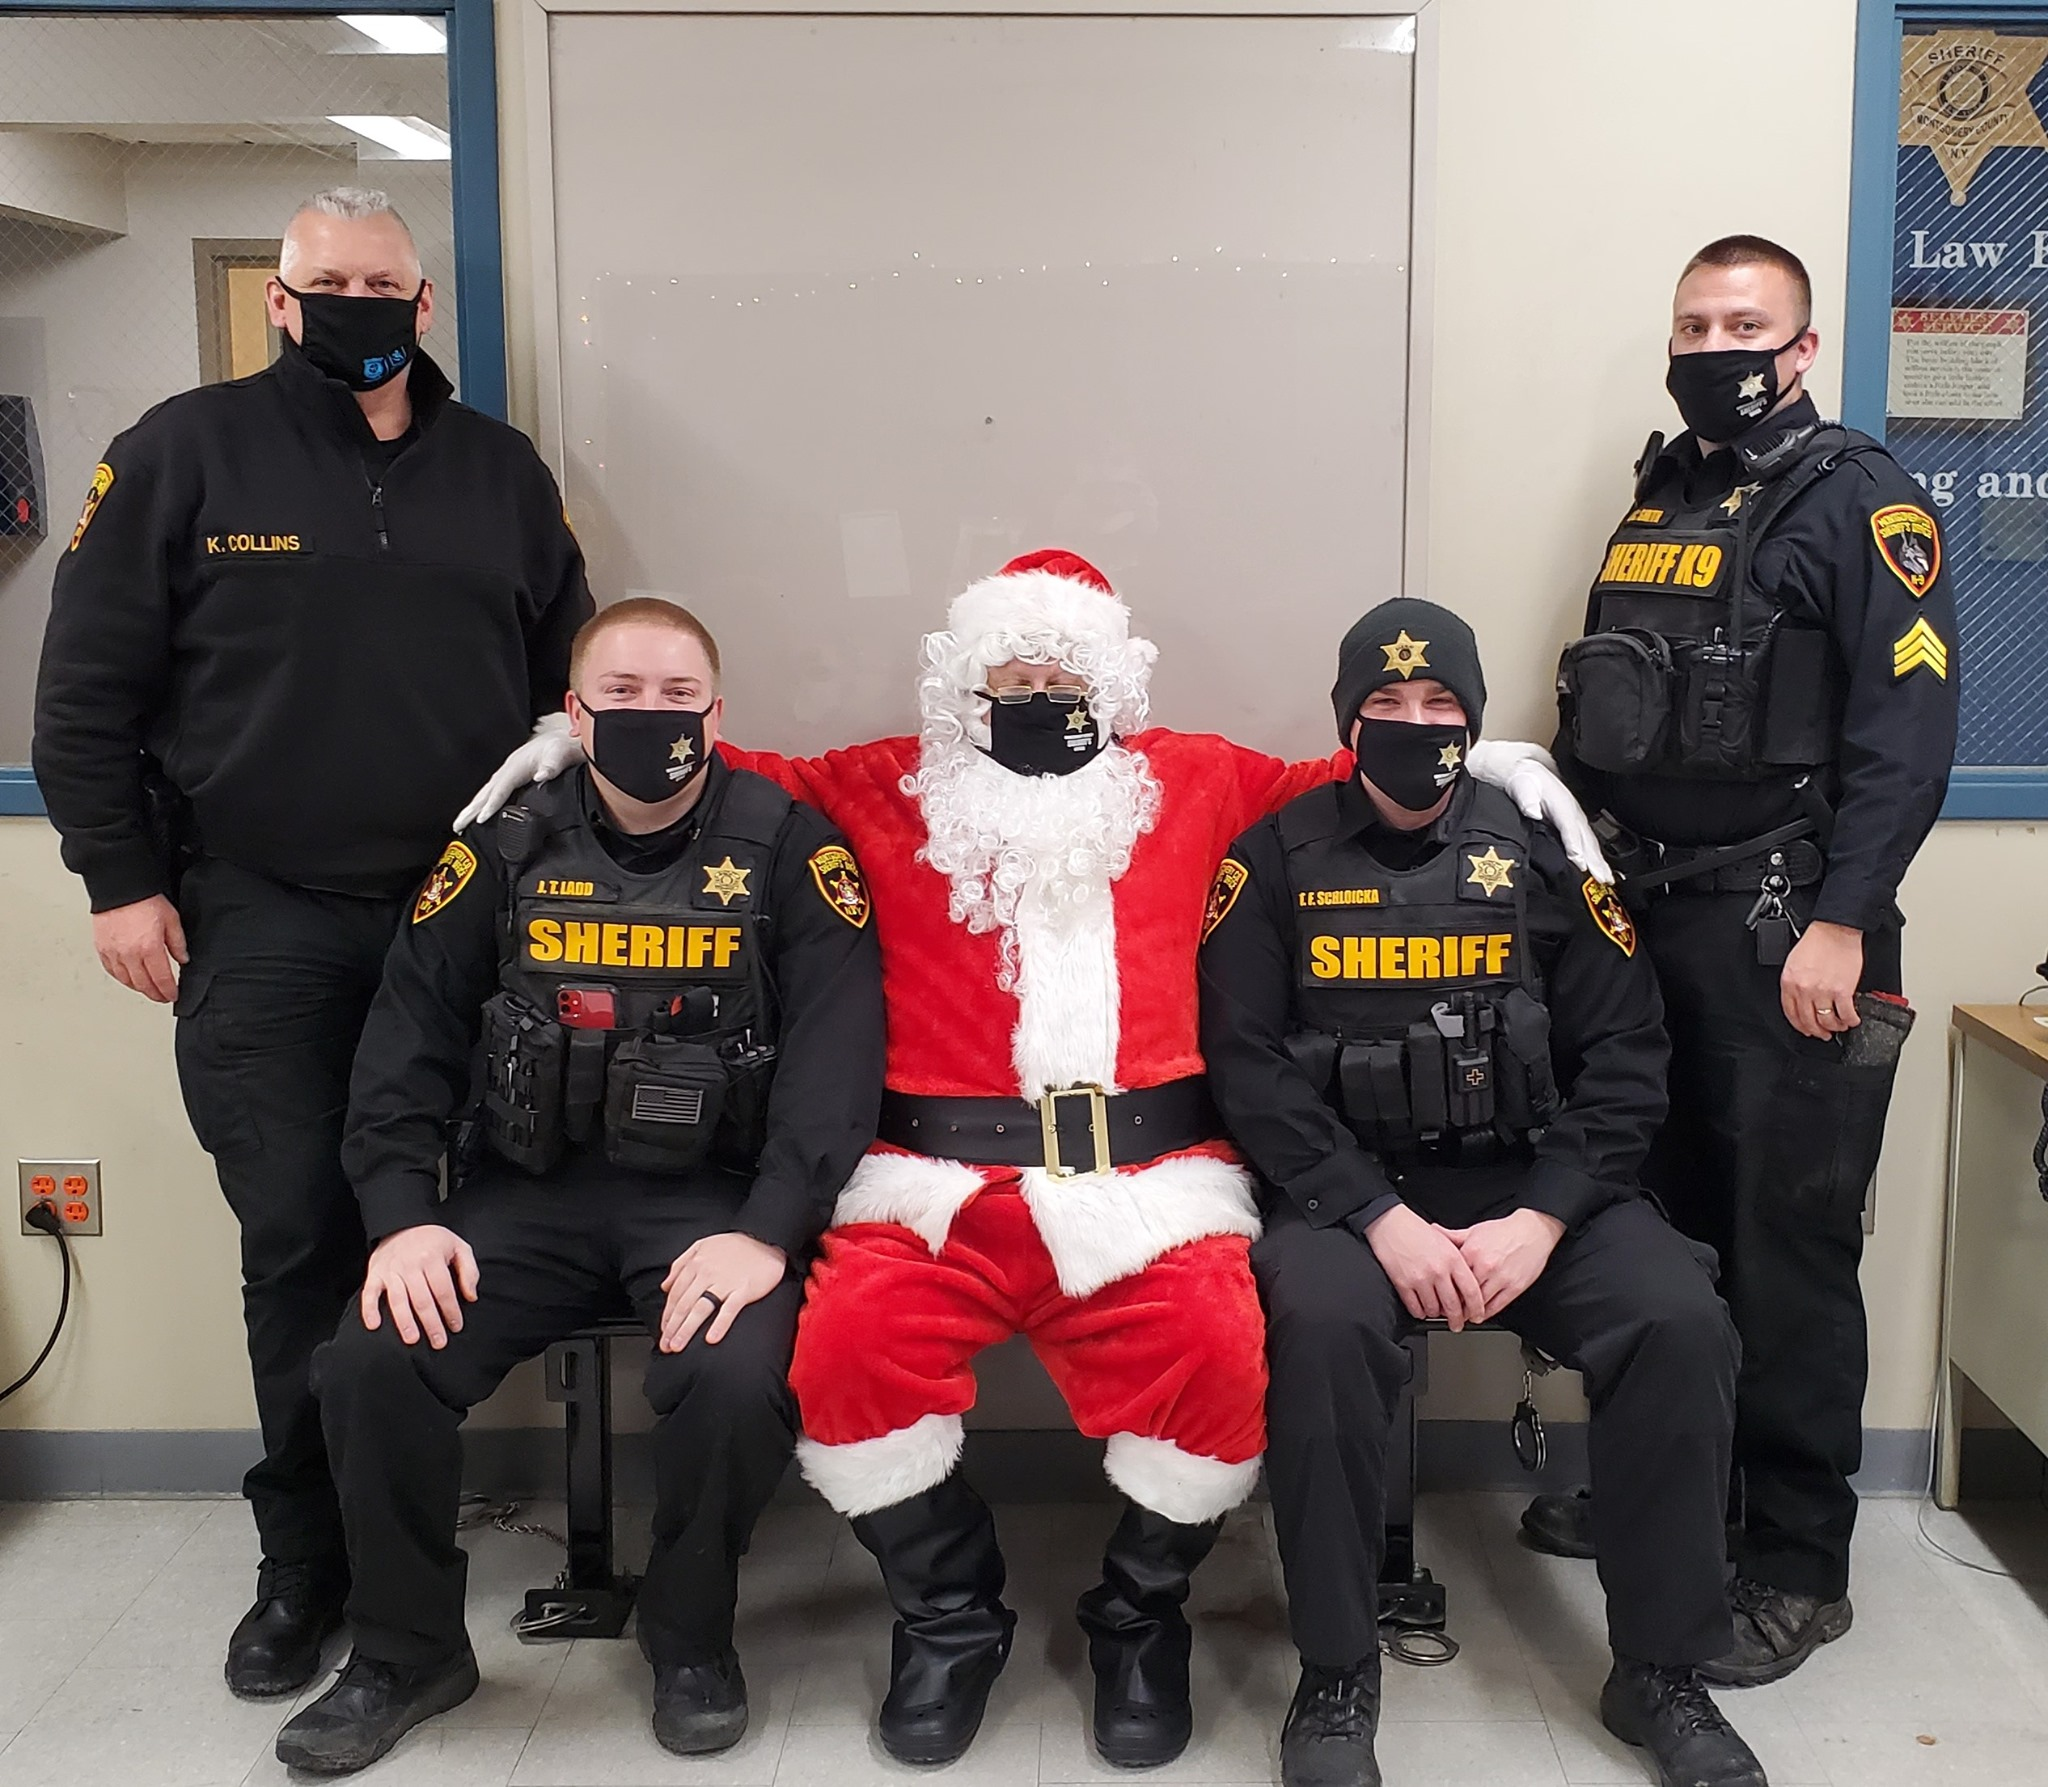 Sheriff's Office Christmas Party